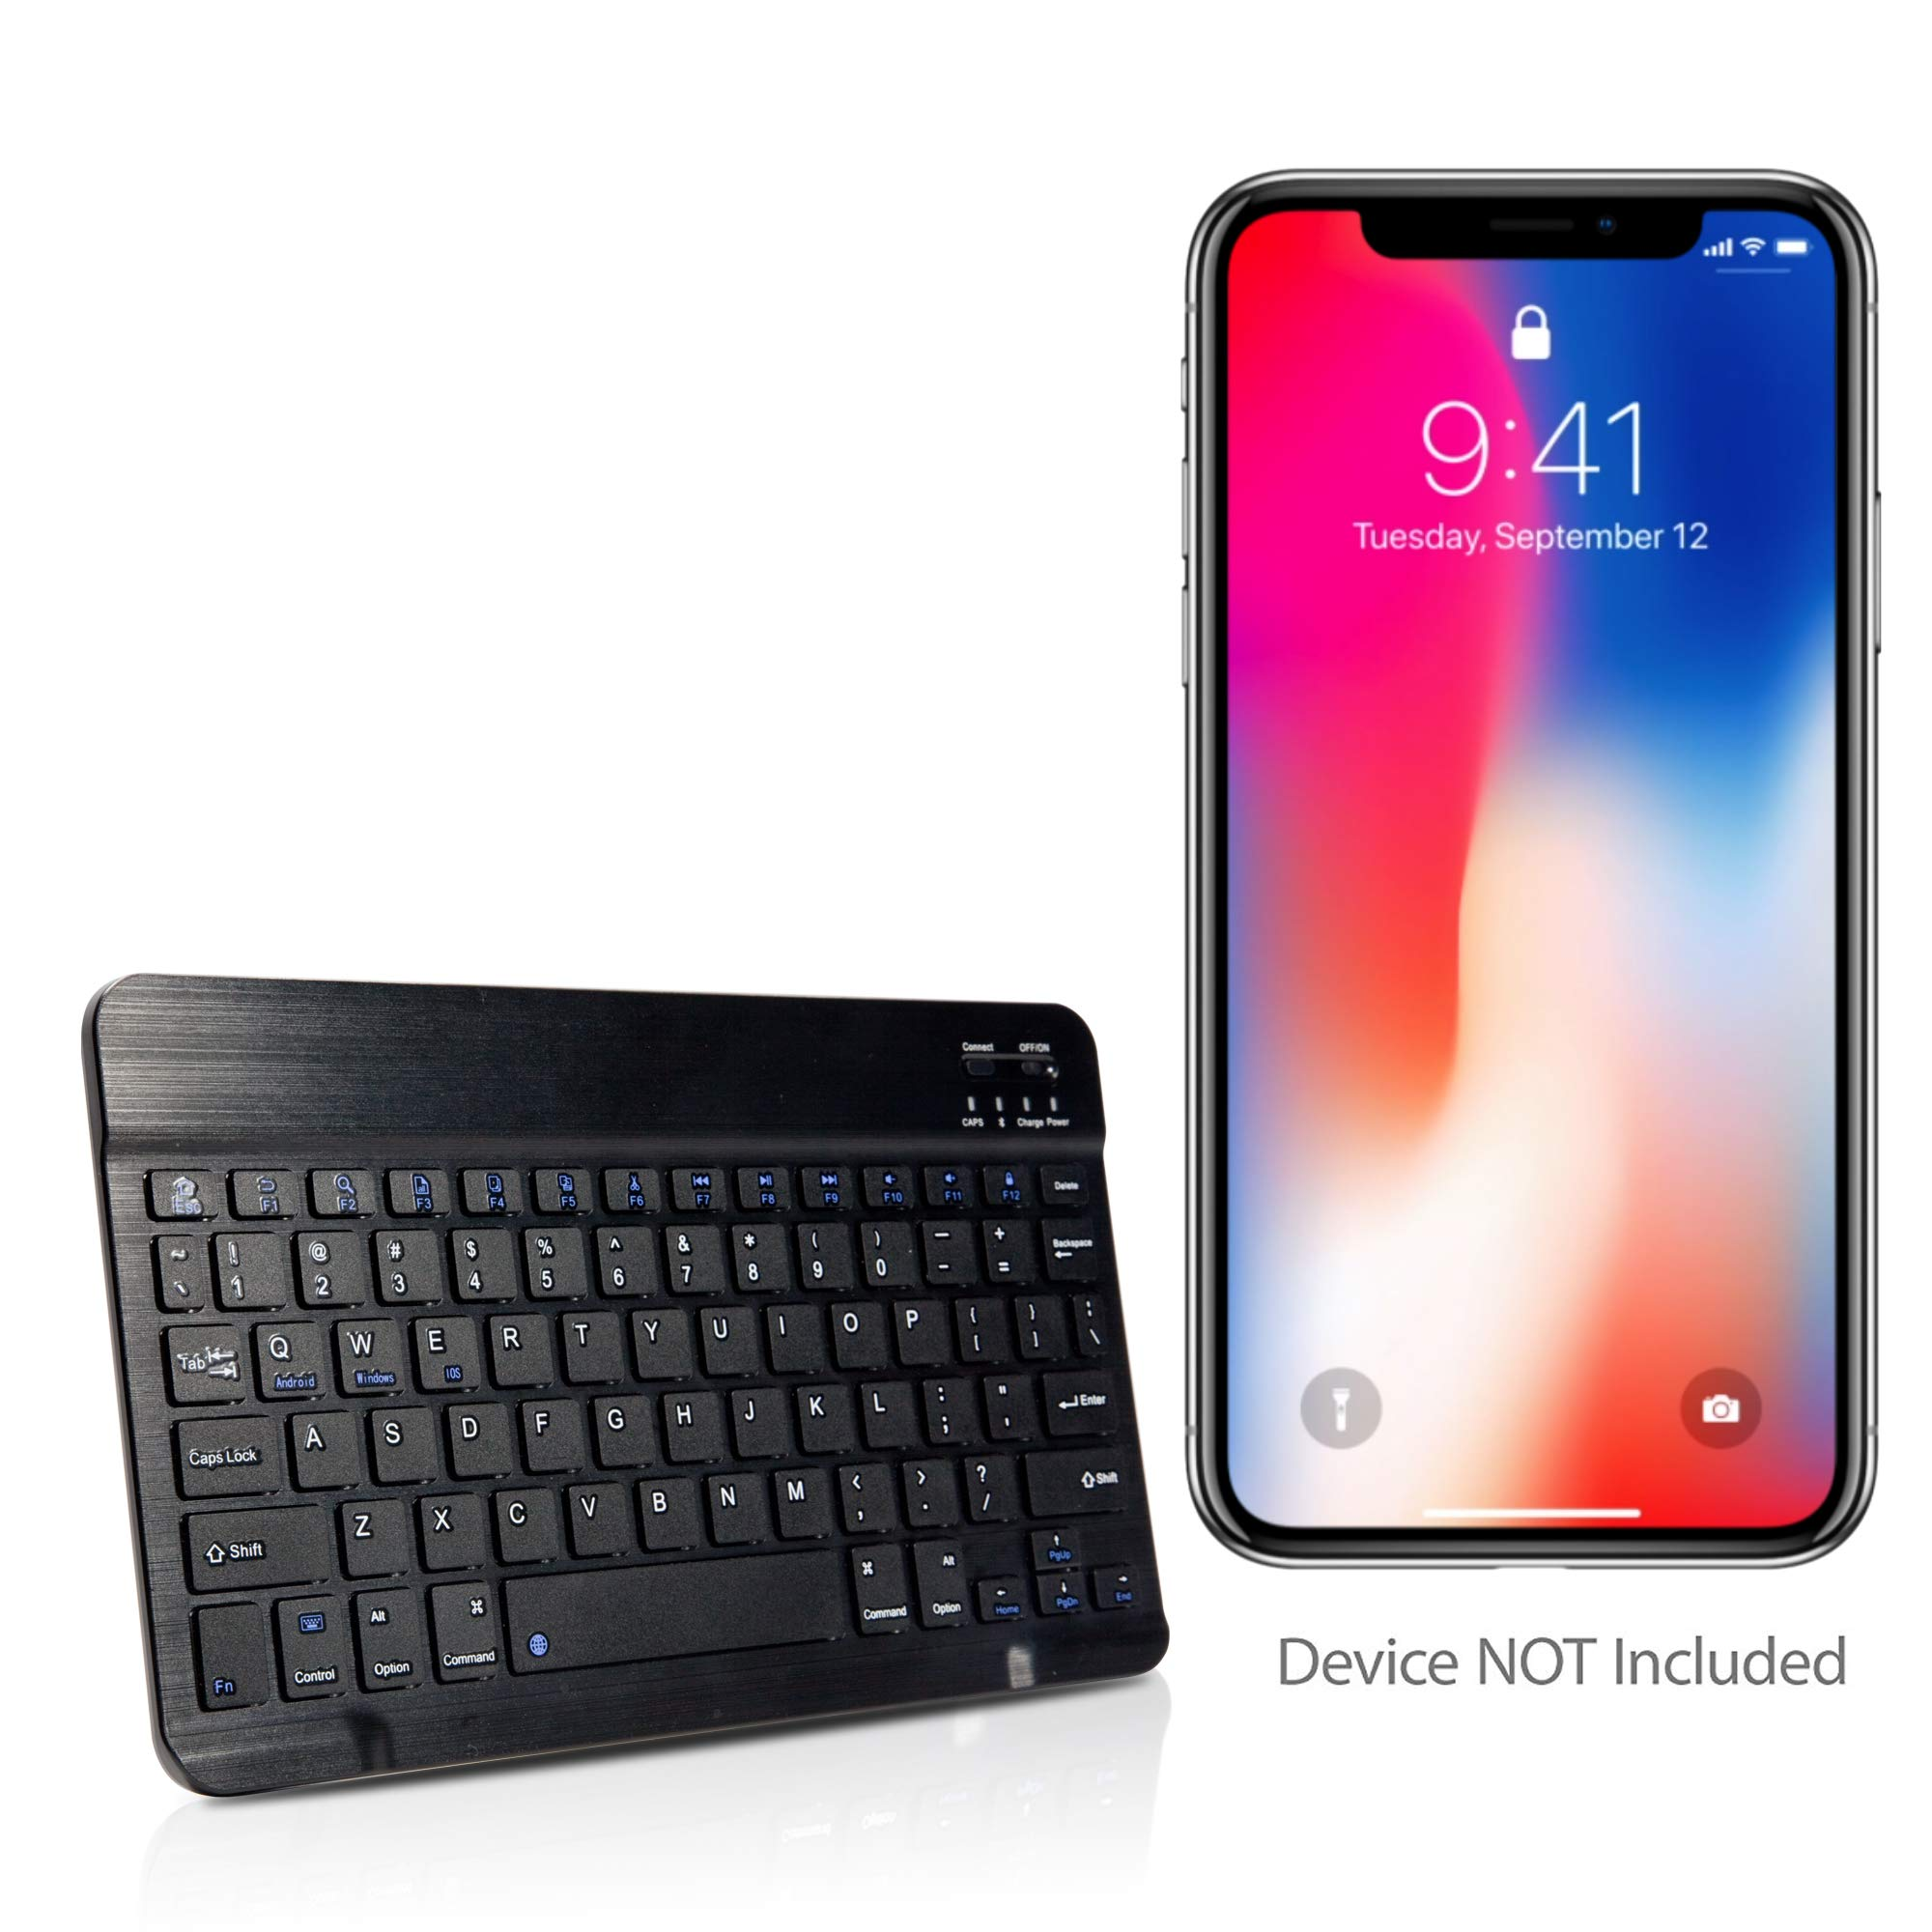 BoxWave Apple iPhone XR Keyboard, [SlimKeys Bluetooth Keyboard] Portable Keyboard with Integrated Commands for Apple iPhone XR - Jet Black